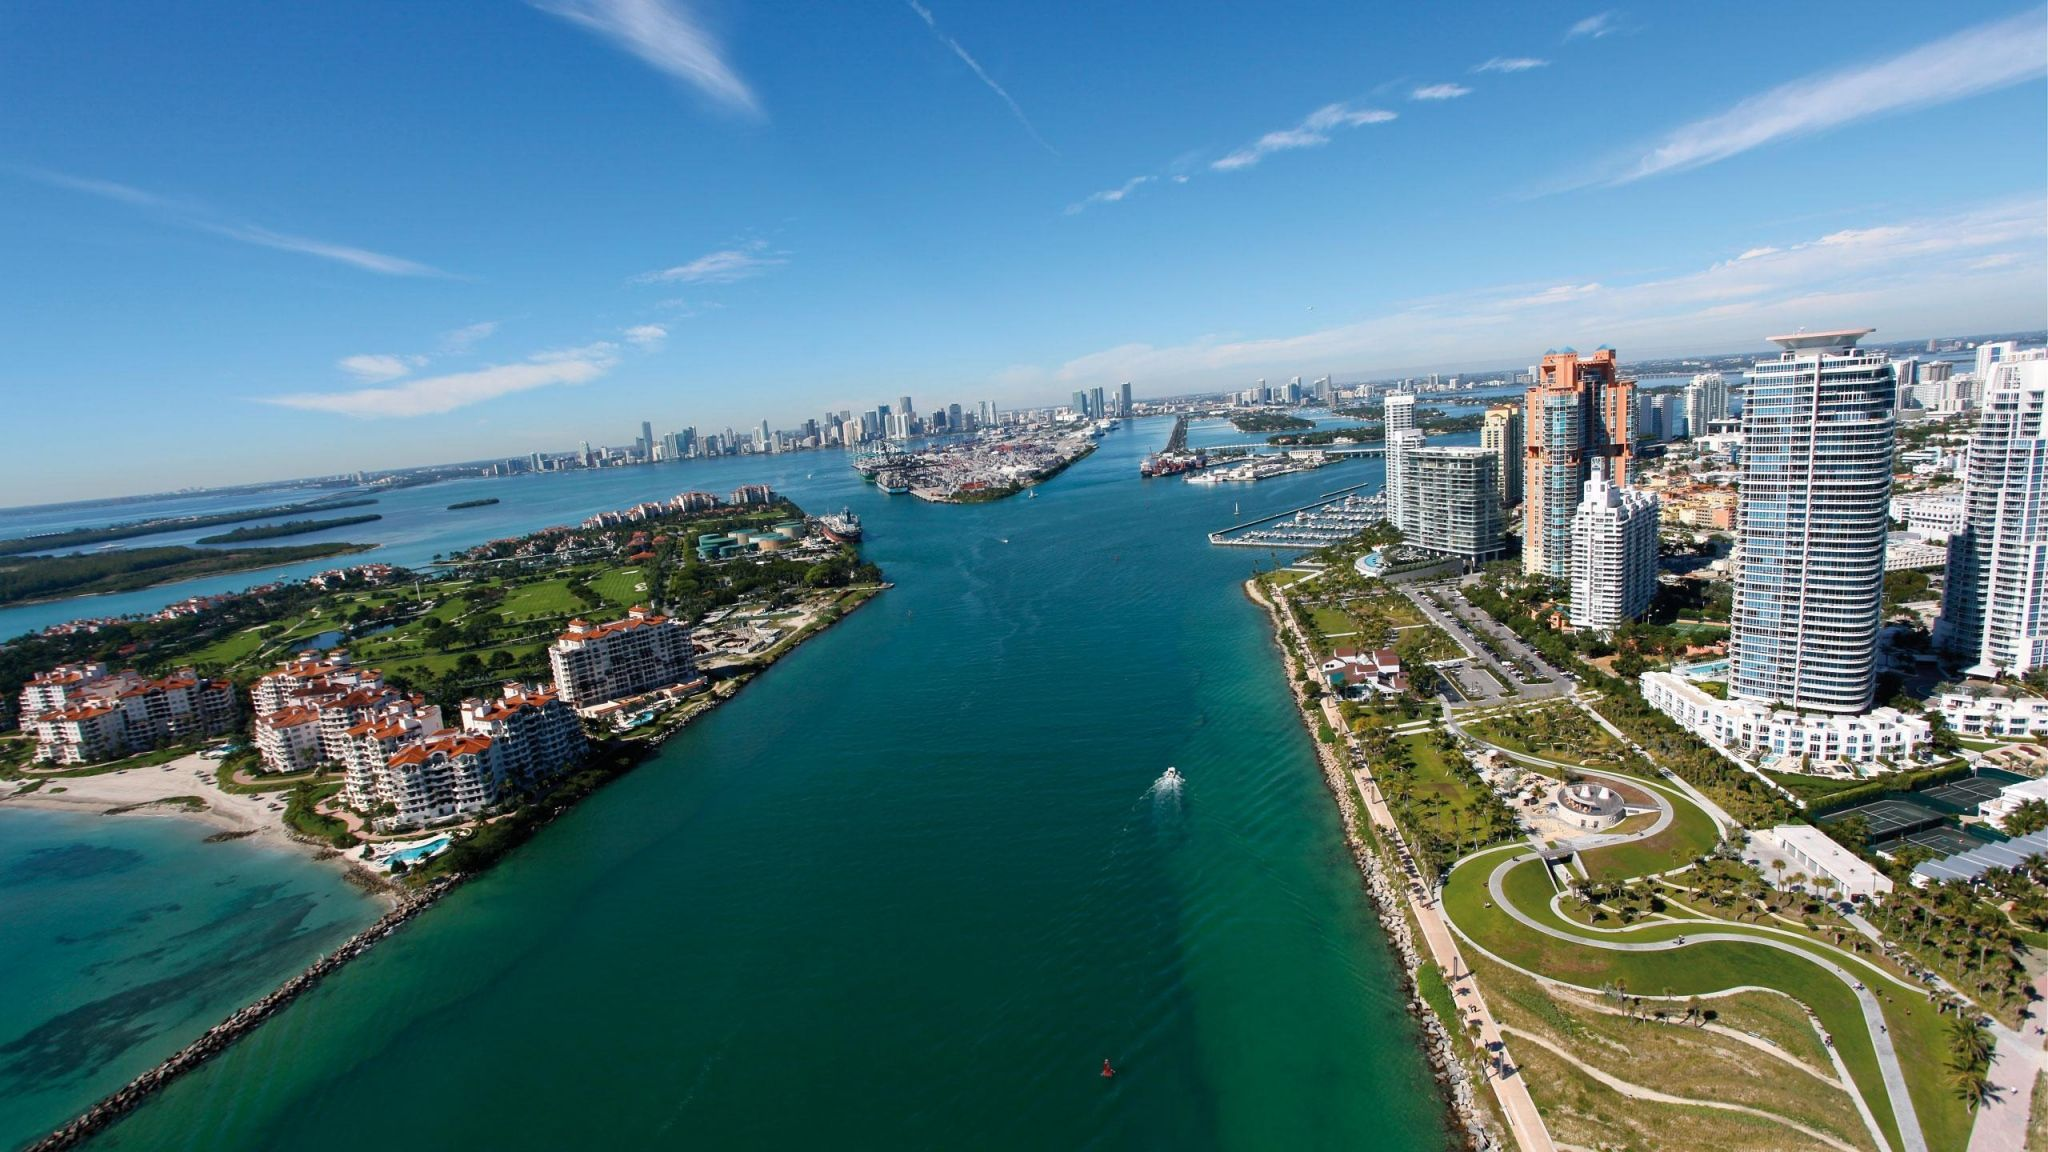 Amazing view of miami  from sky.